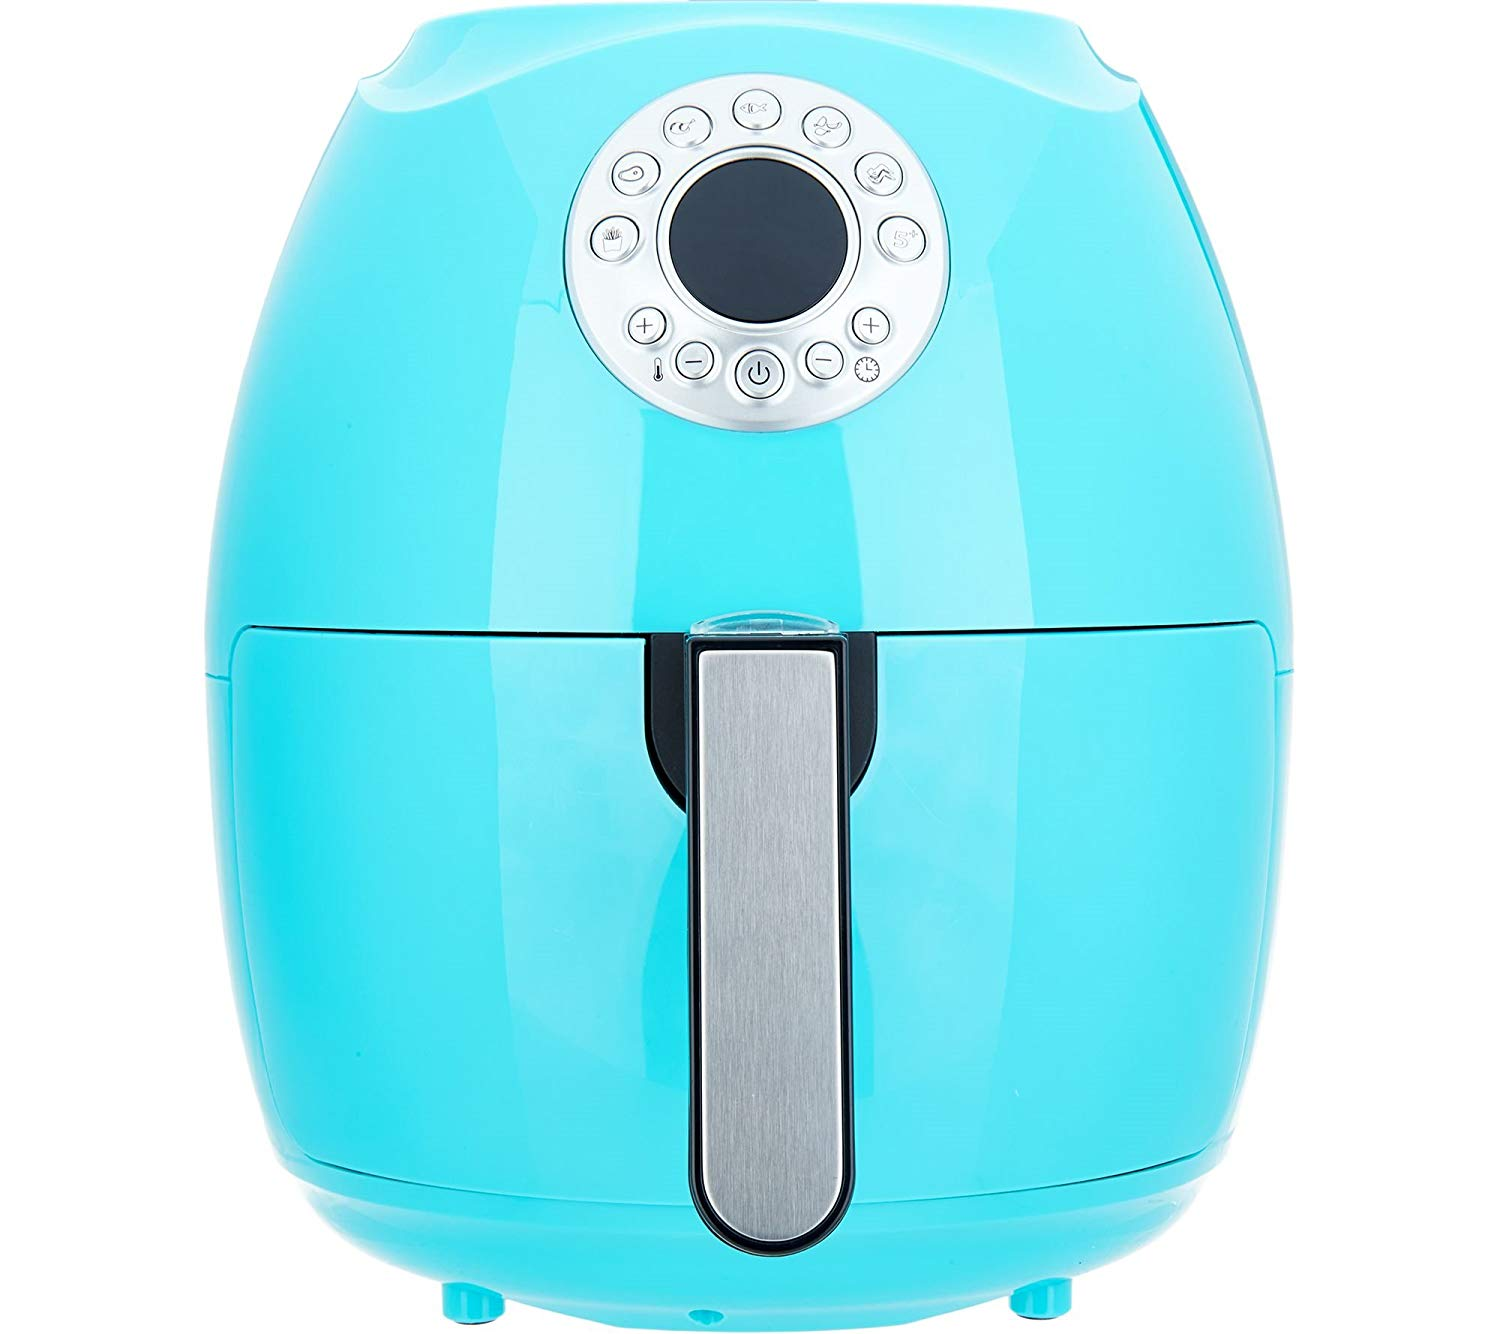 "Cook's Essentials 600187470285 3.4-Qt Digital Air Fryer w/Presets & Pans (Turquoise), 12-1/2""H x 10-1/2""Diam, weighs 9 lbs"